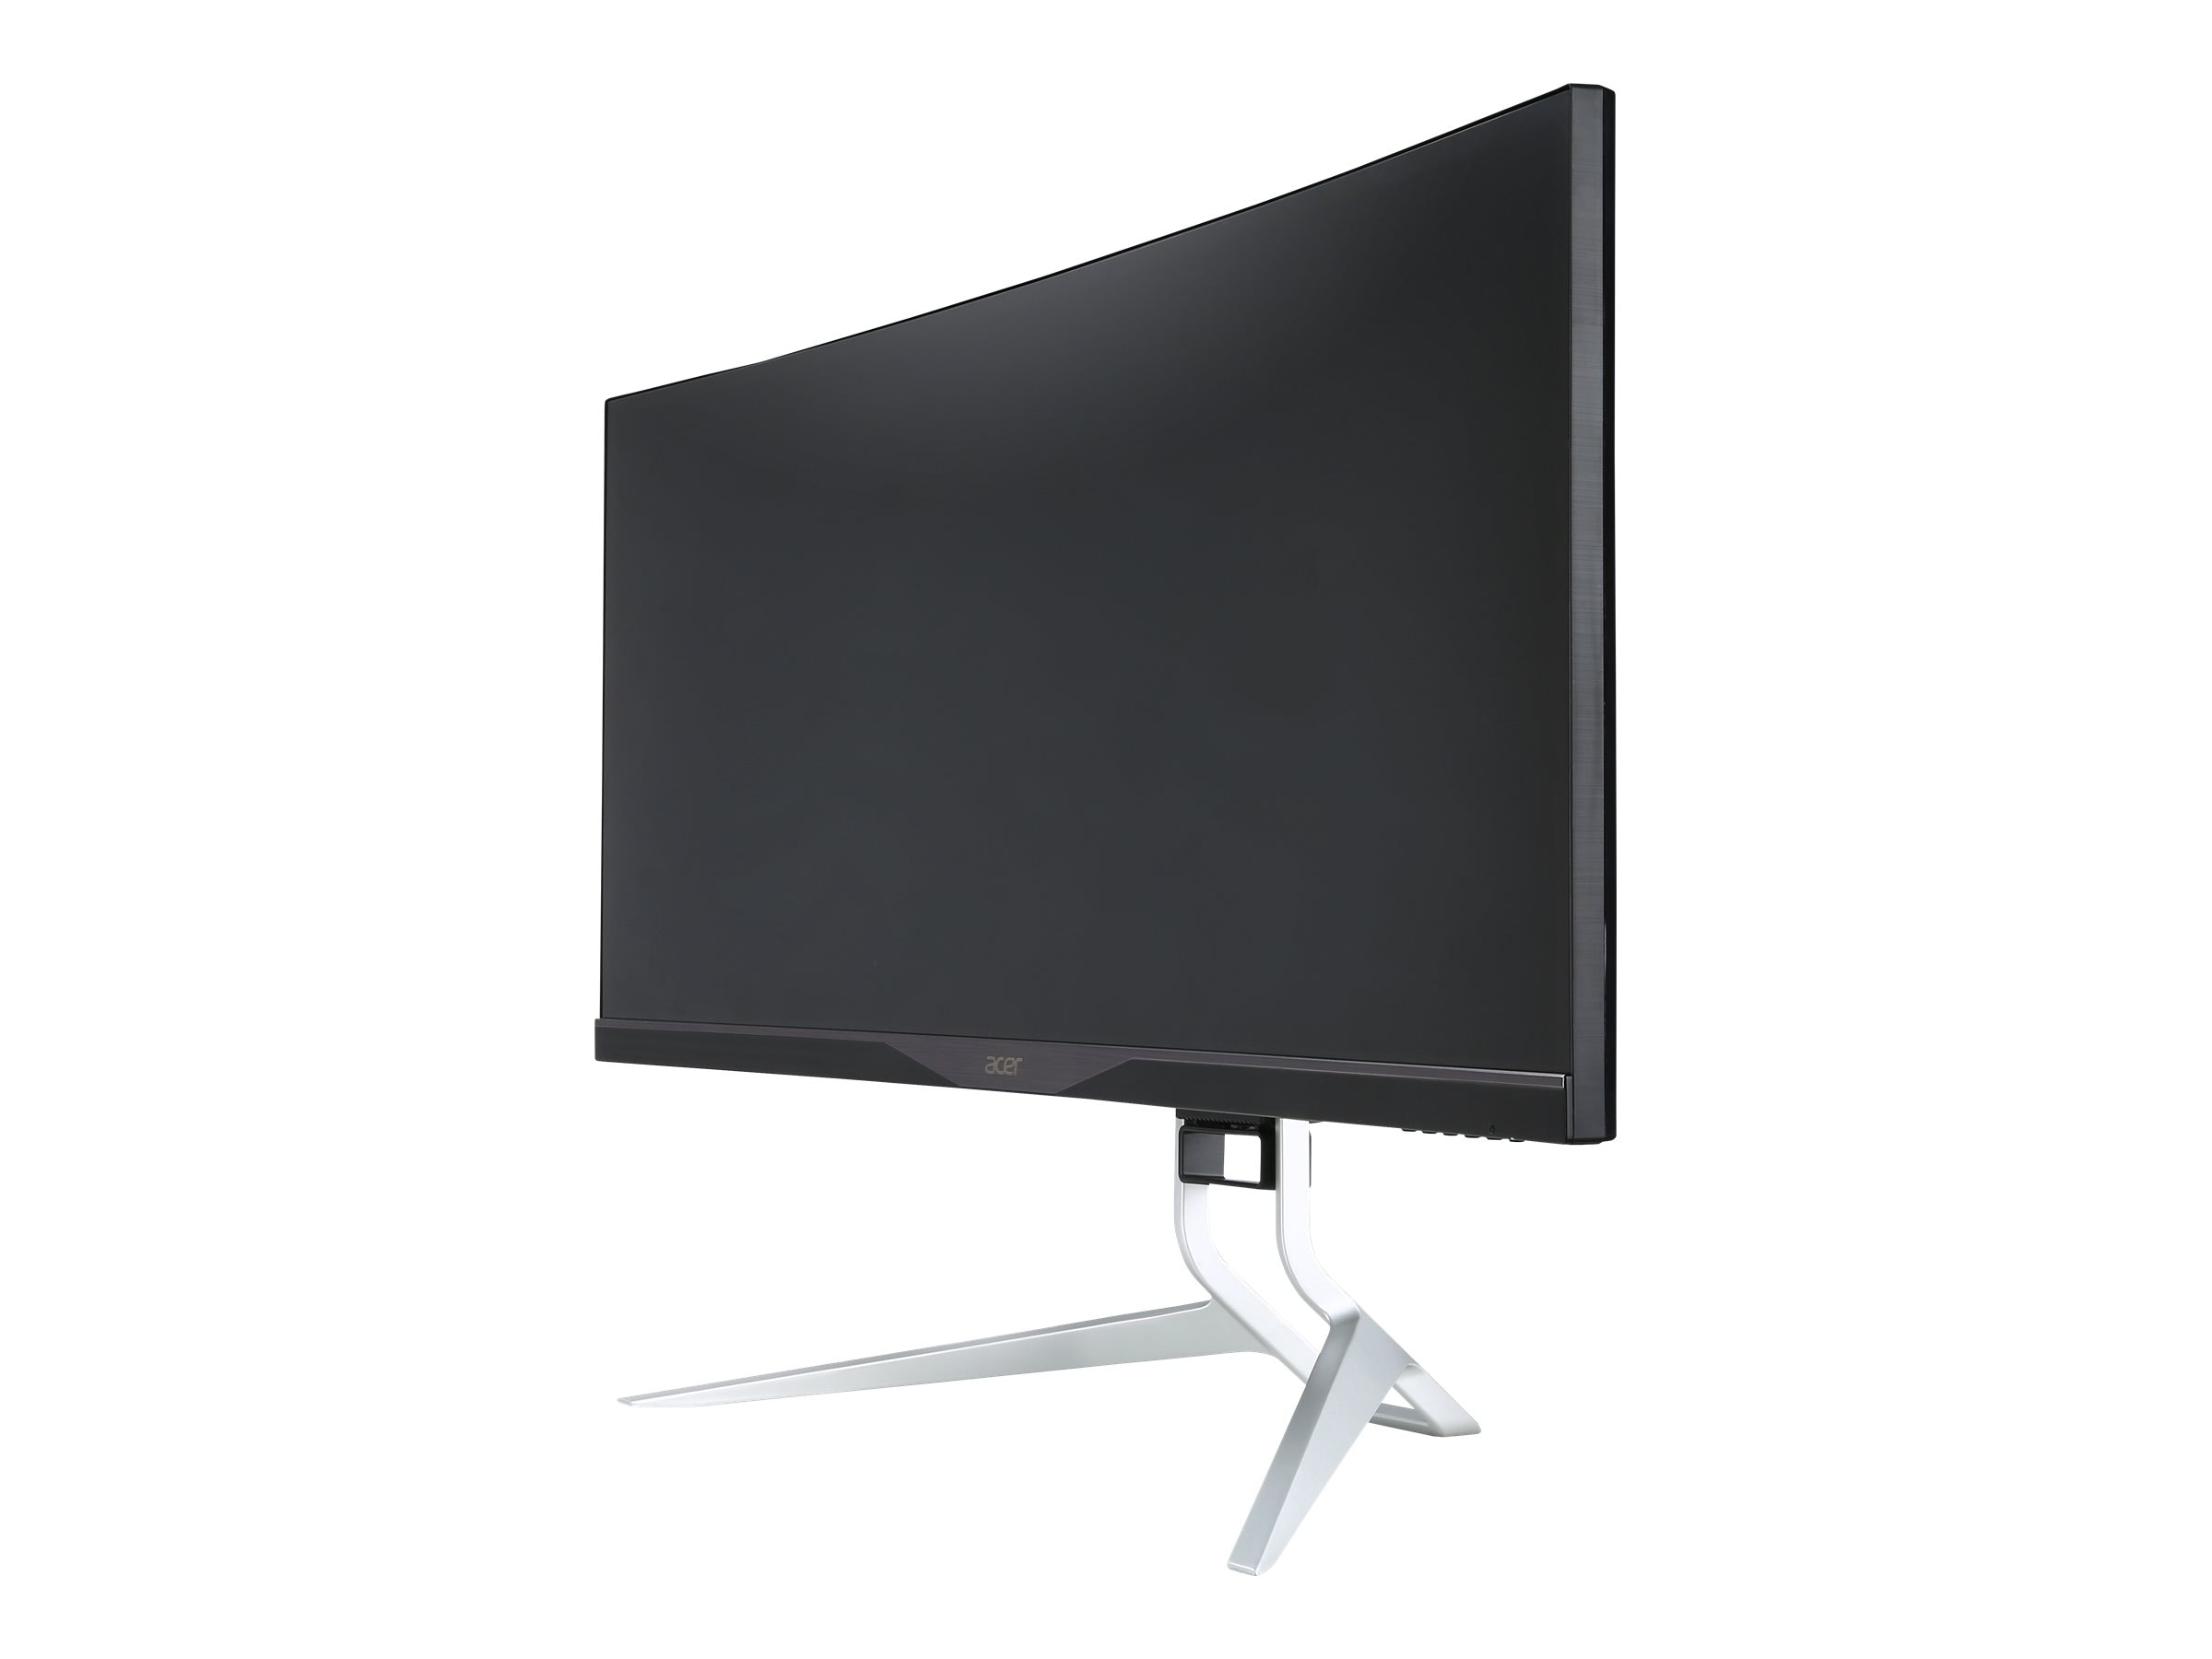 Acer 34 XR342CK QHD LED-LCD Ultrawide Curved Monitor, Black, UM.CX2AA.001